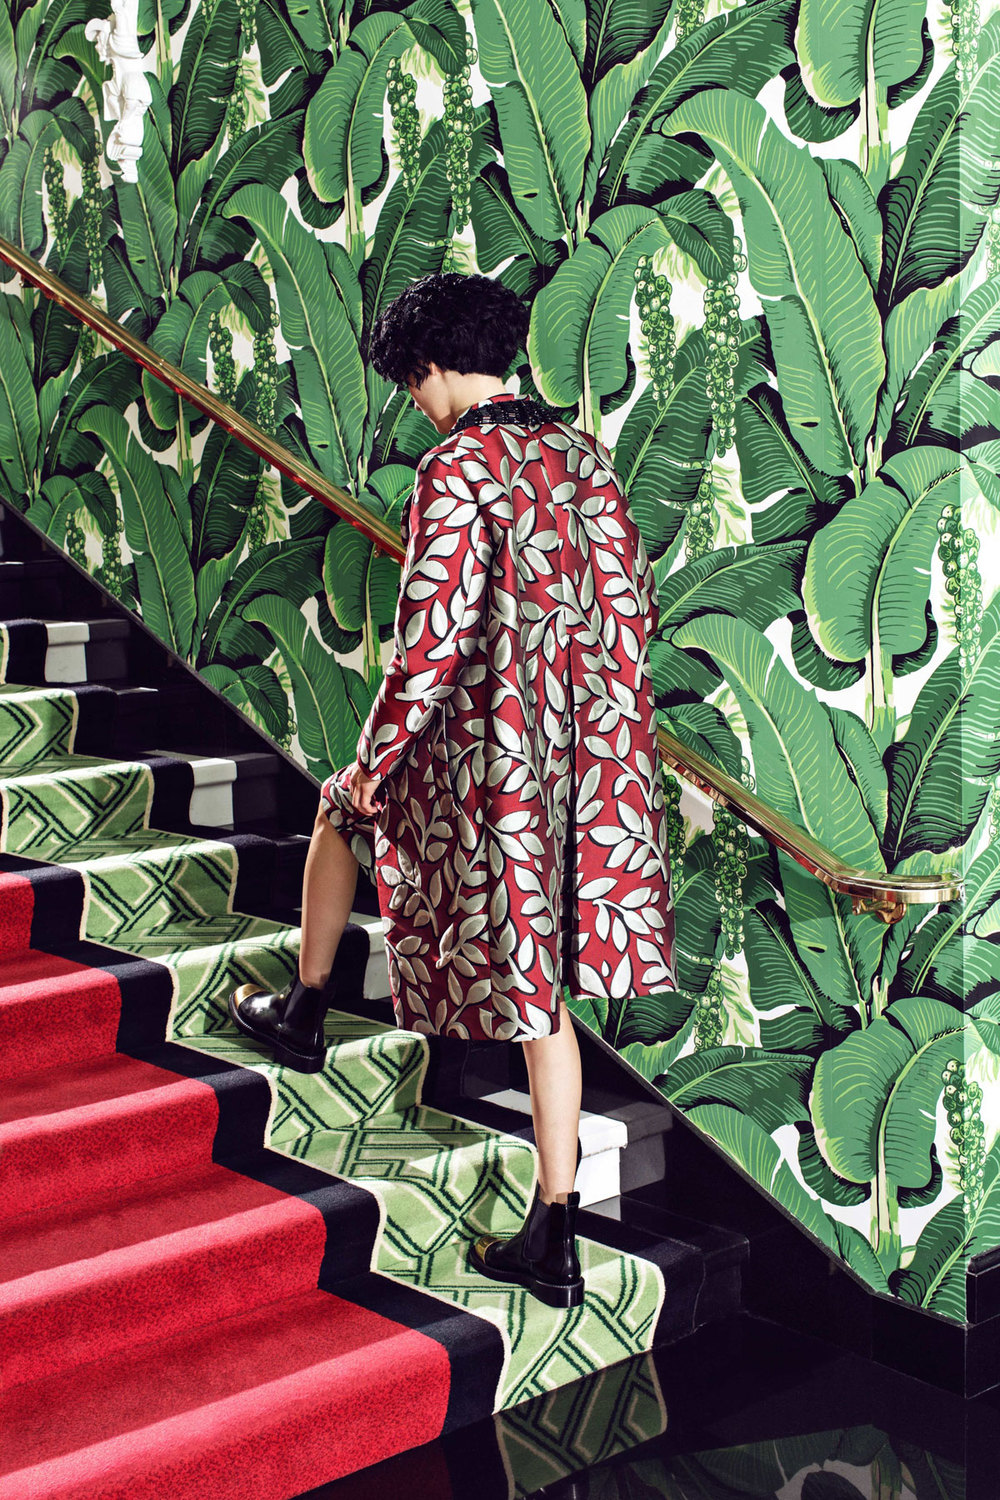 Prints on Prints: Fall's Most Vibrant, Decadent Patterns